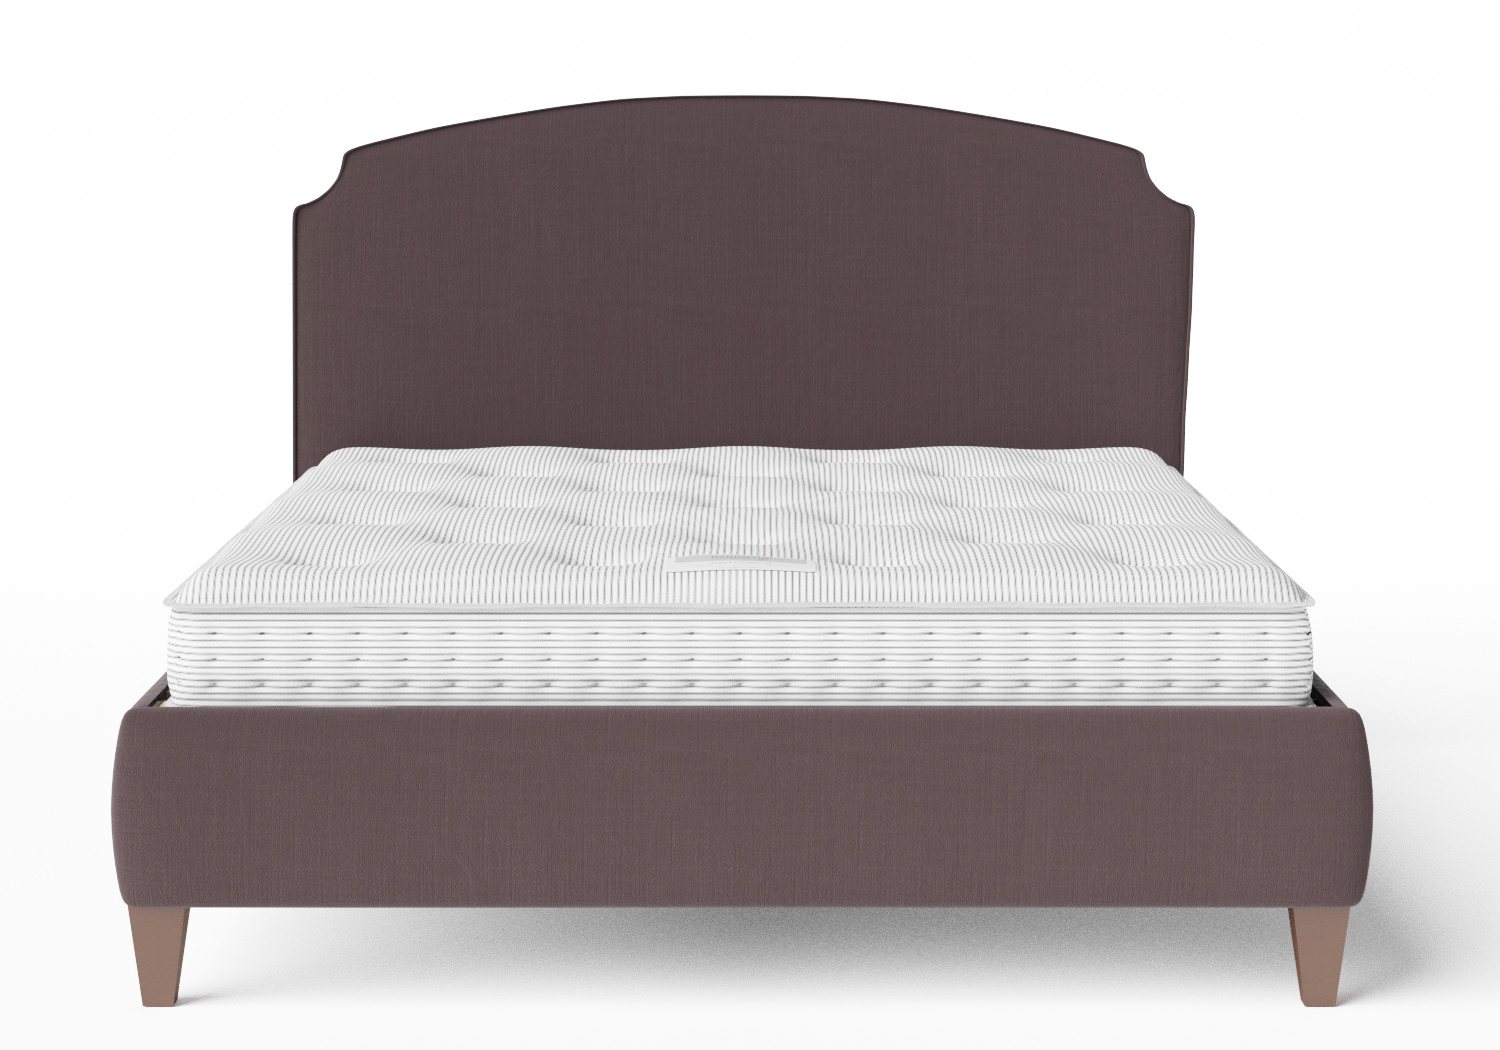 Lide Upholstered Bed in Aubergine fabric with piping shown with Juno 1 mattress